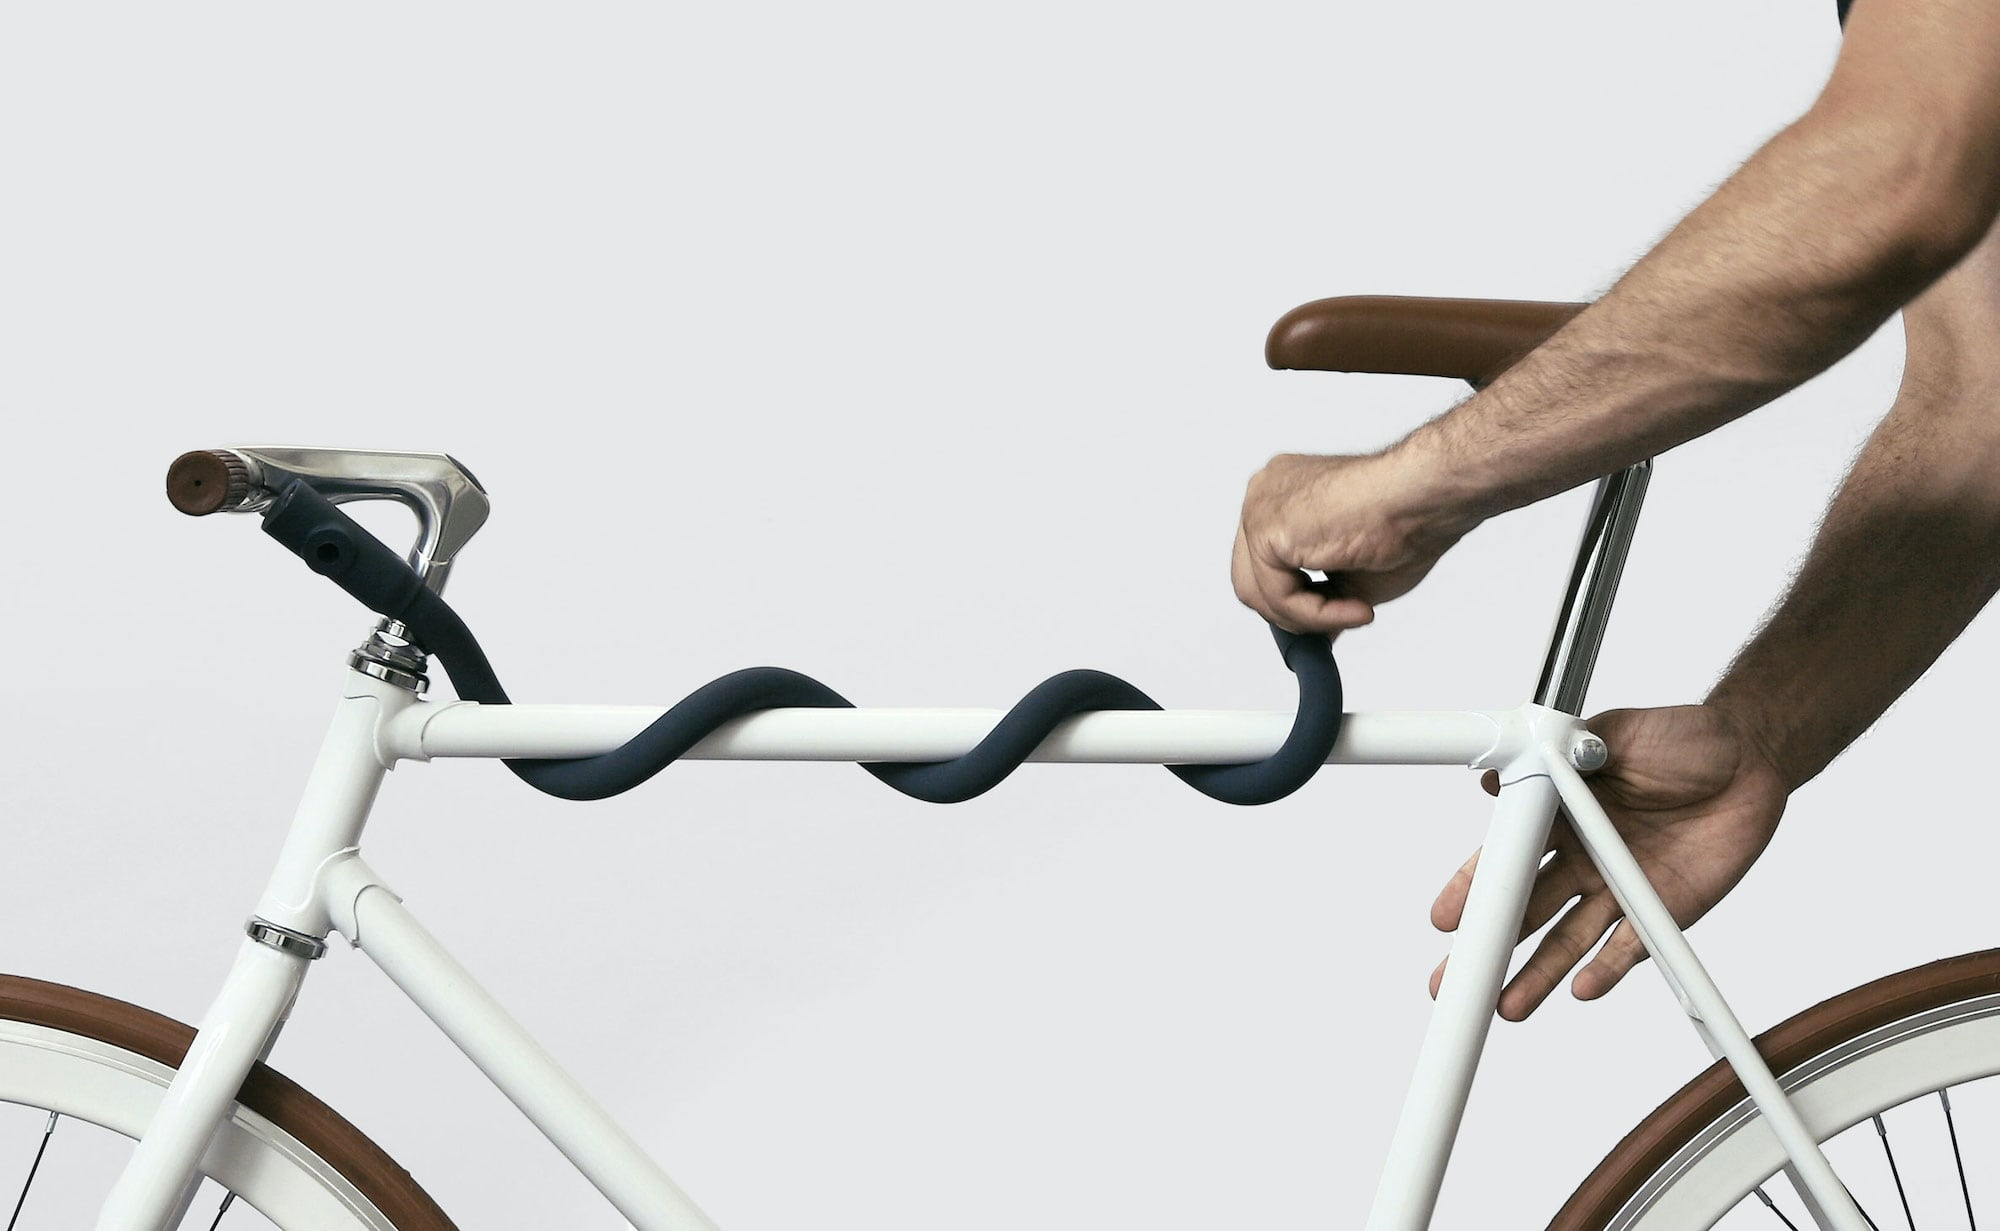 The multi-shape bike lock is wrapped around the center bar of a white bike frame.